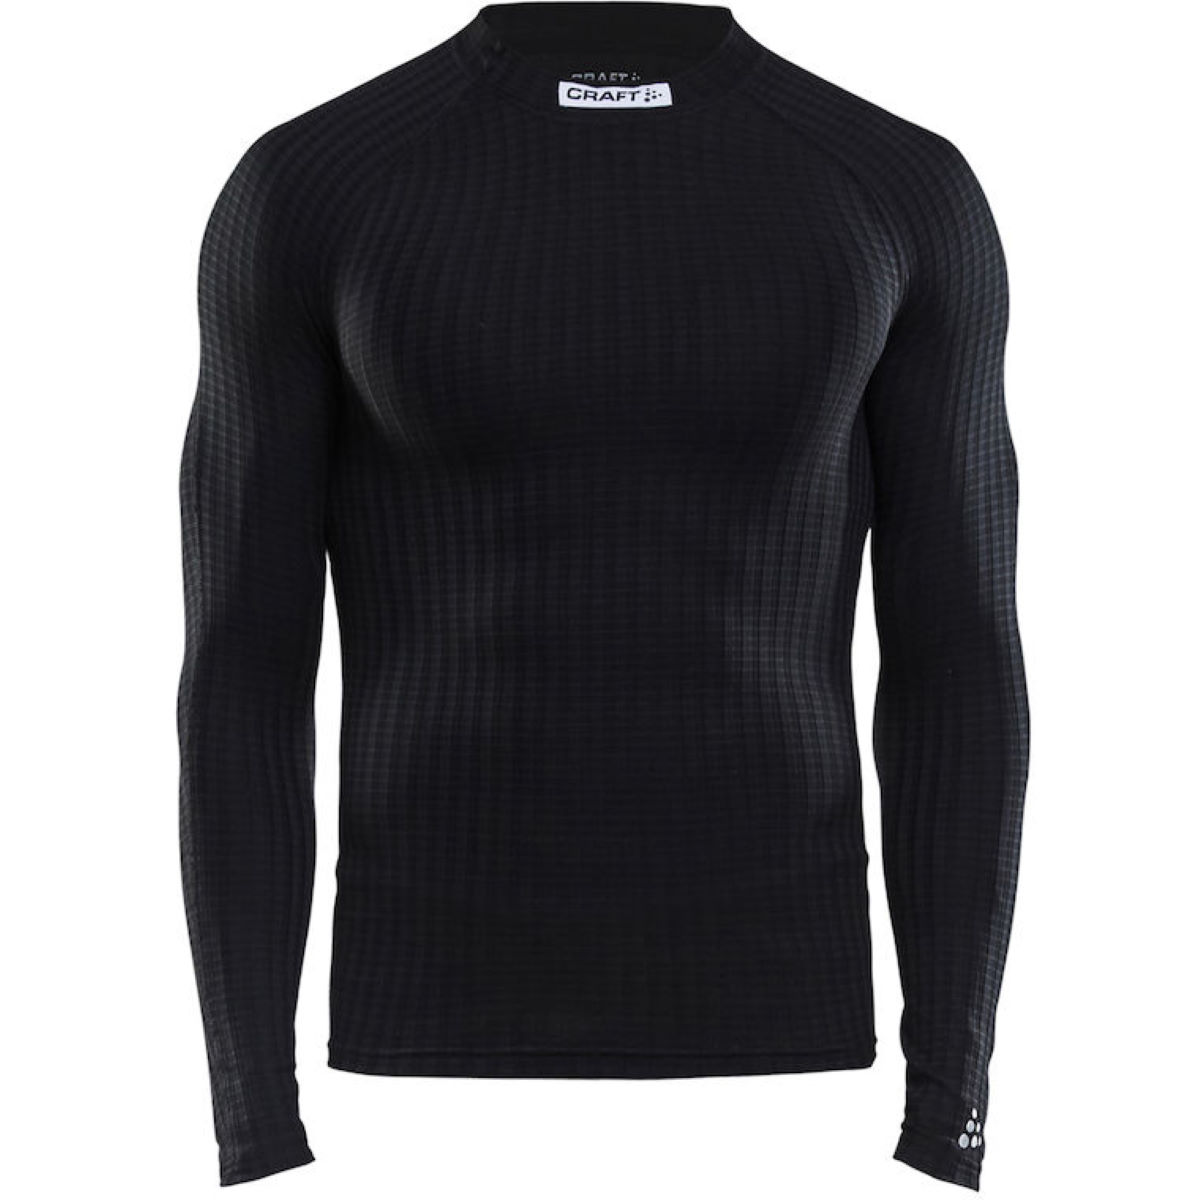 Craft active extreme 1 0 base layer base layers black aw16 1906255 9999 3